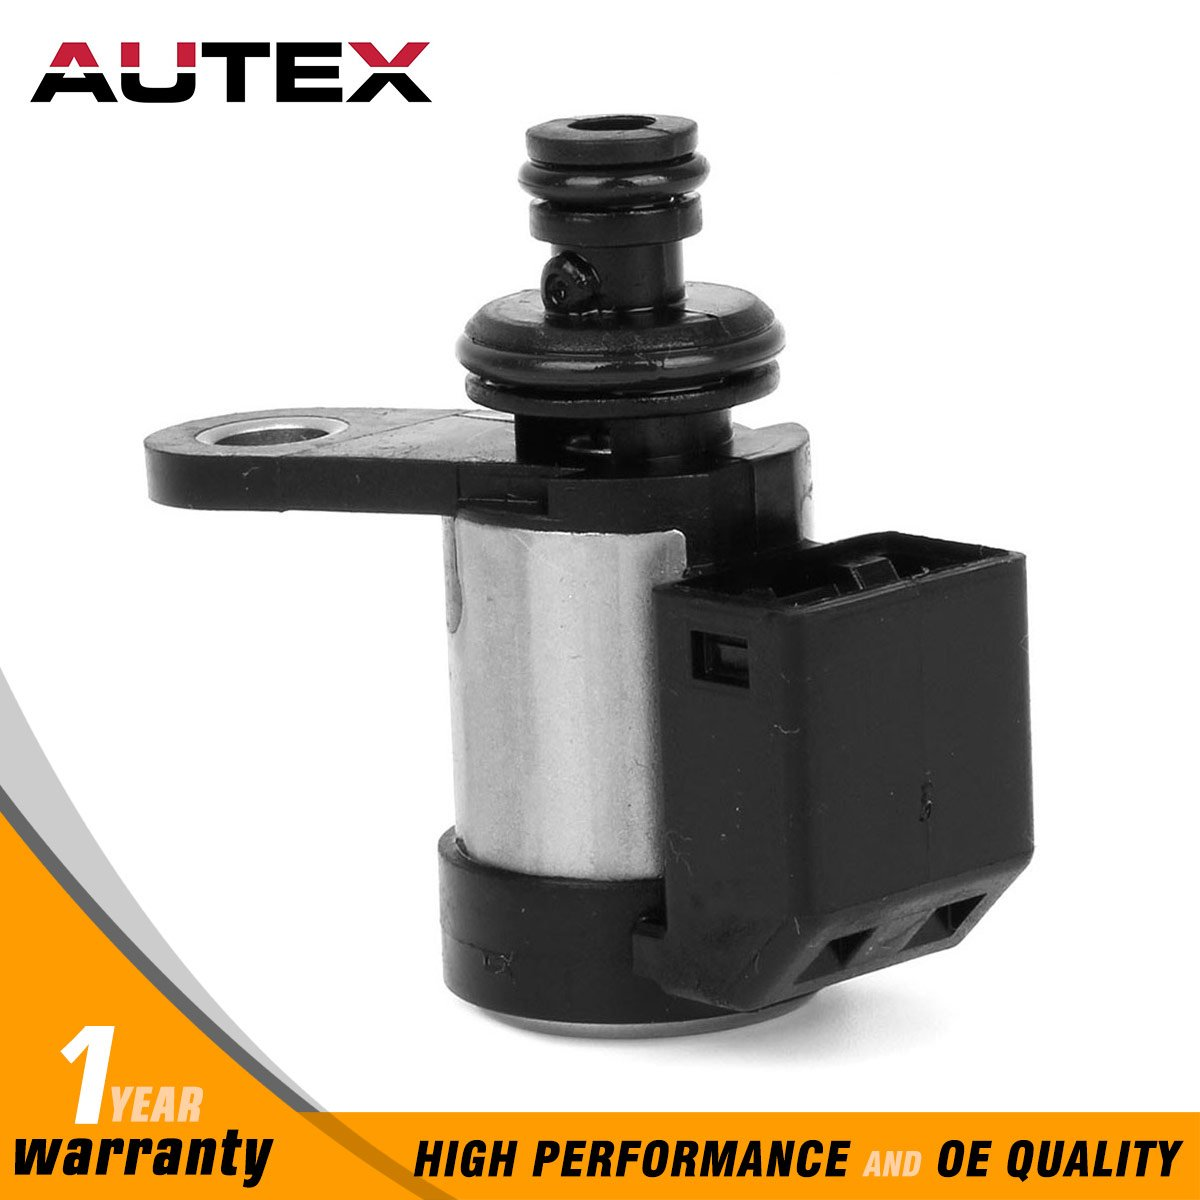 AUTEX RE5R05A 63421 Transmission PWM Line Pressure/TCC/Front Brake Solenoid 260130031 3194190X01 Nissan Infinity 2002 Up